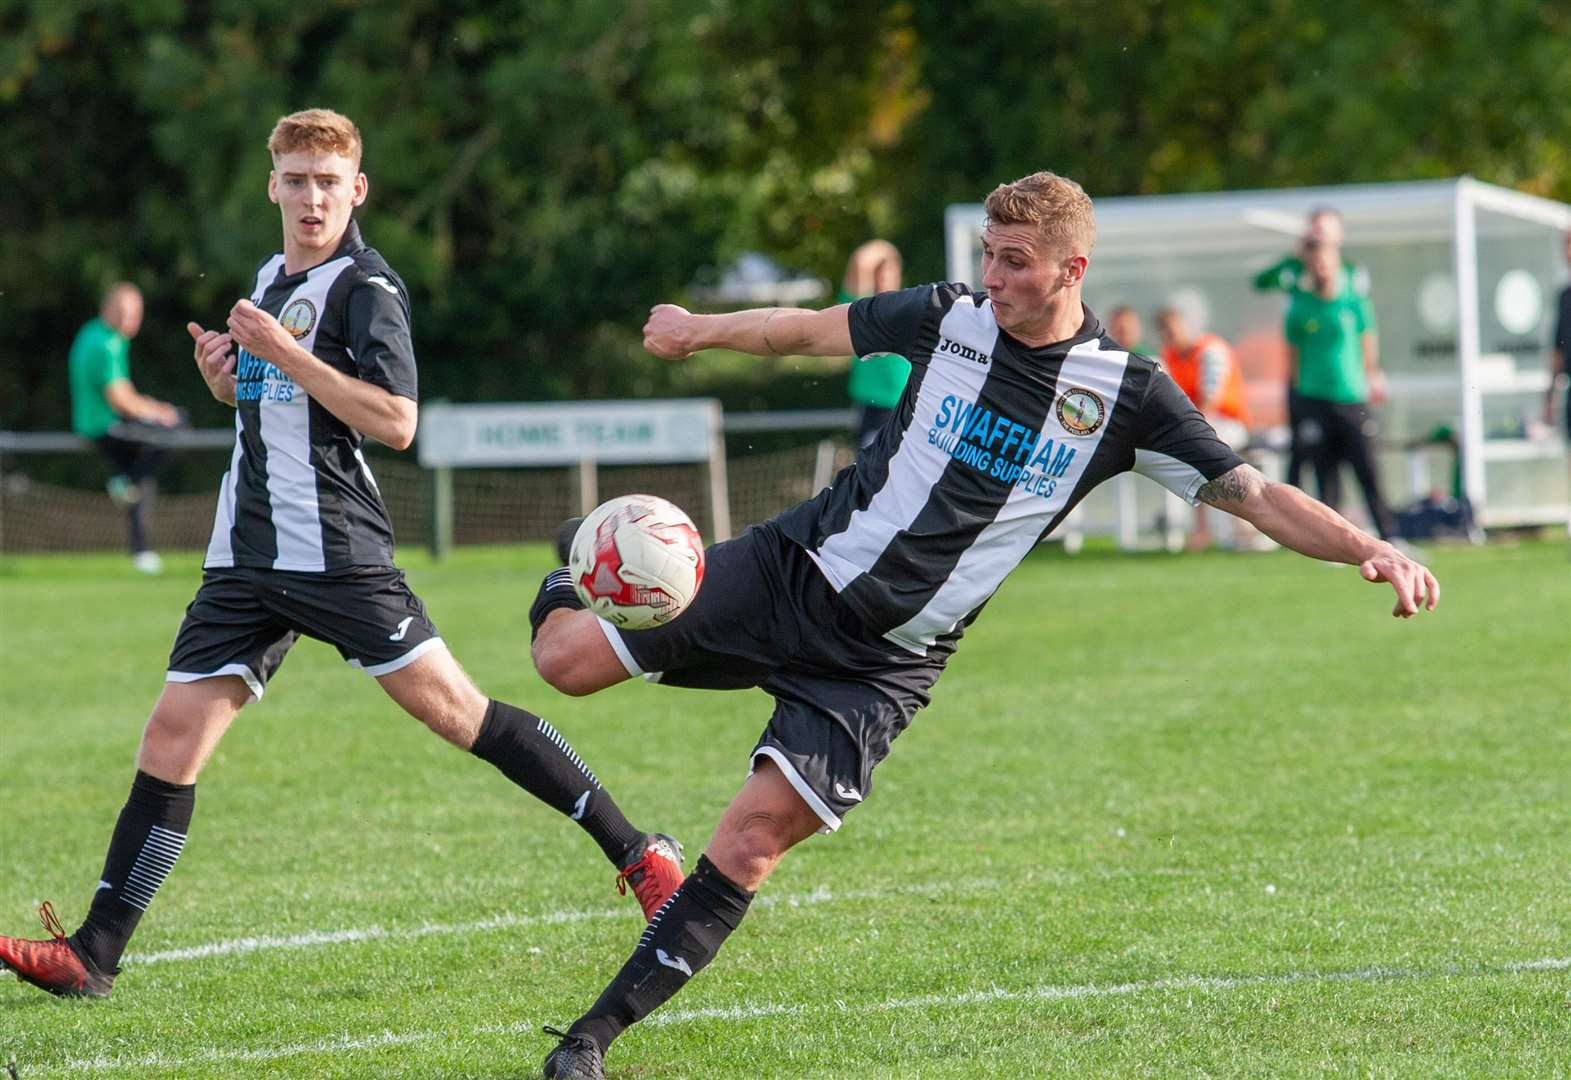 Two late goals see Swaffham Town through in FA Vase